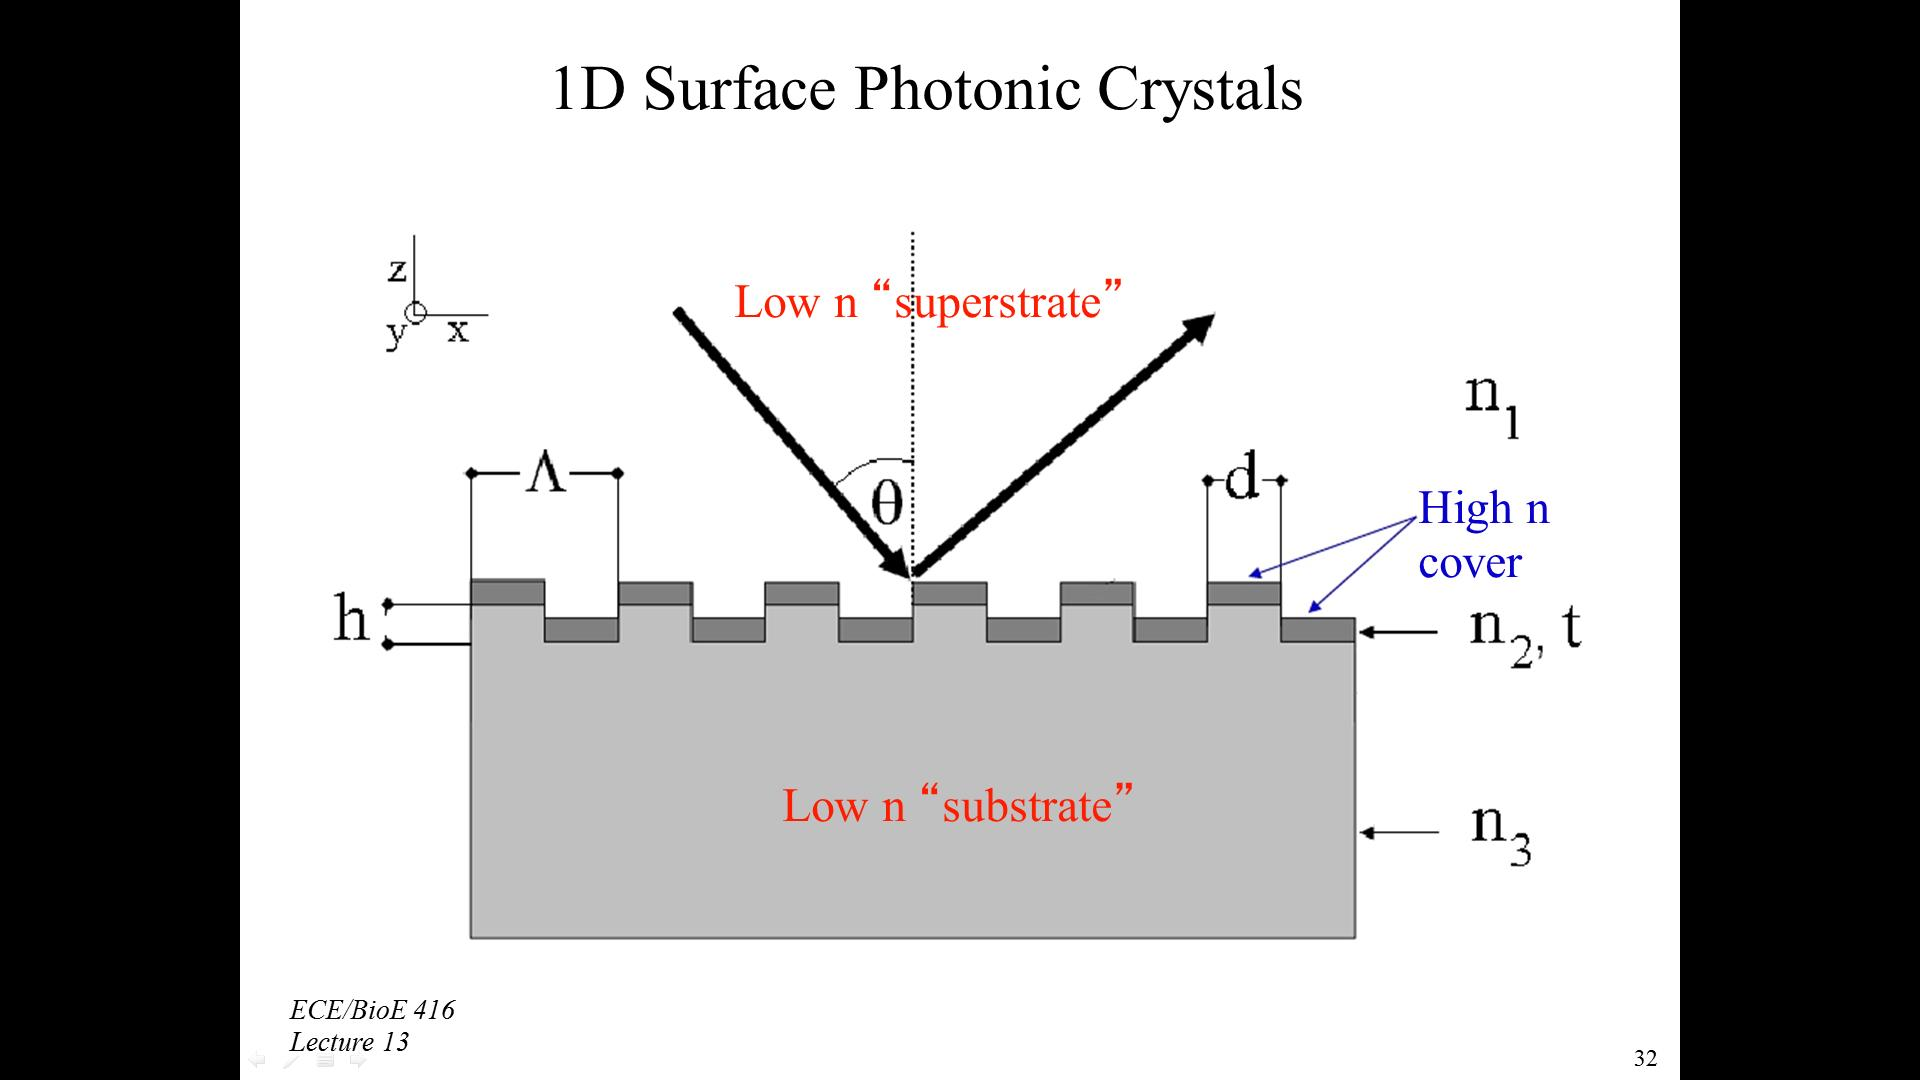 1D Surface Photonic Crystals